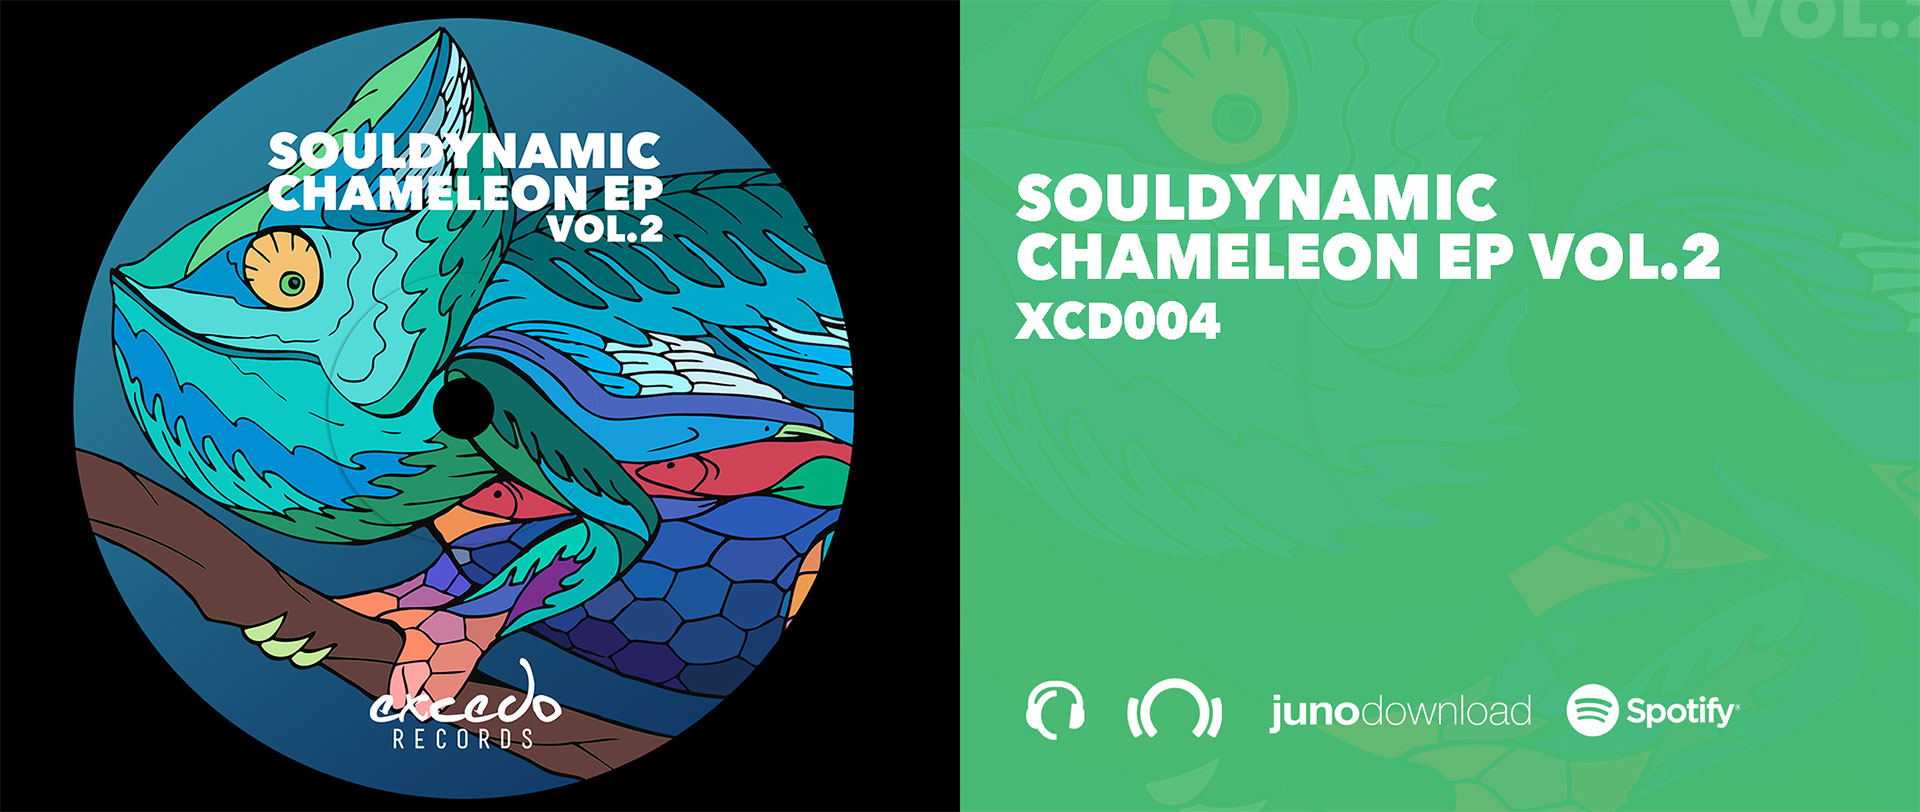 Chameleon EP Vol.2 OUT NOW!